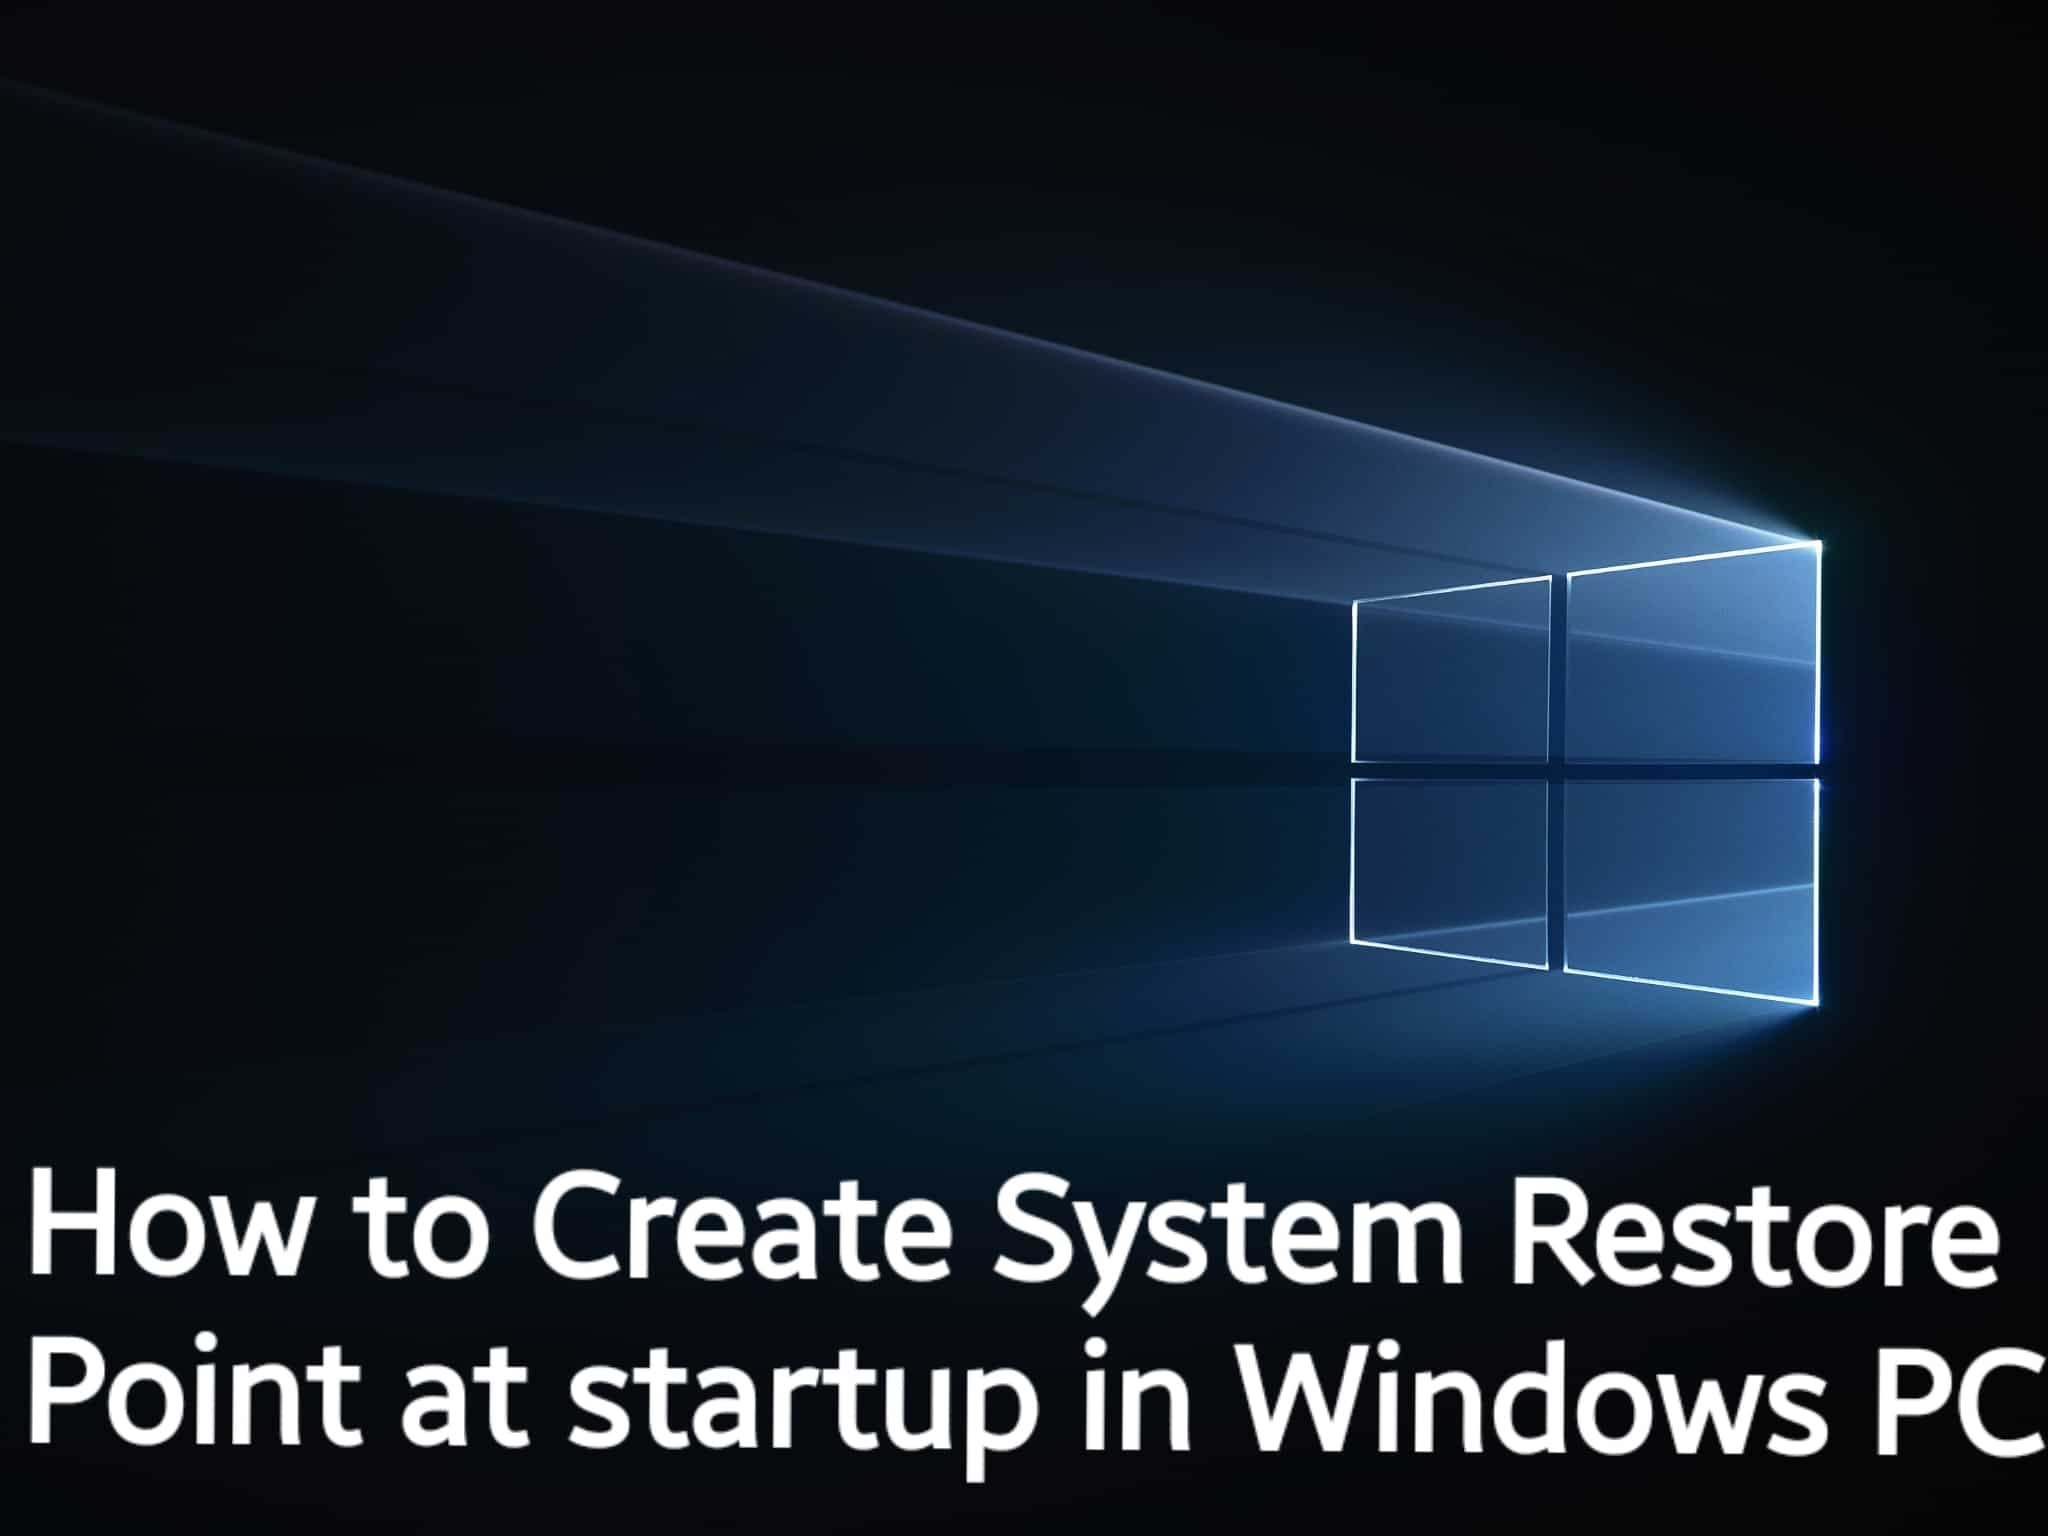 How to Create System Restore Point at startup in Windows PC